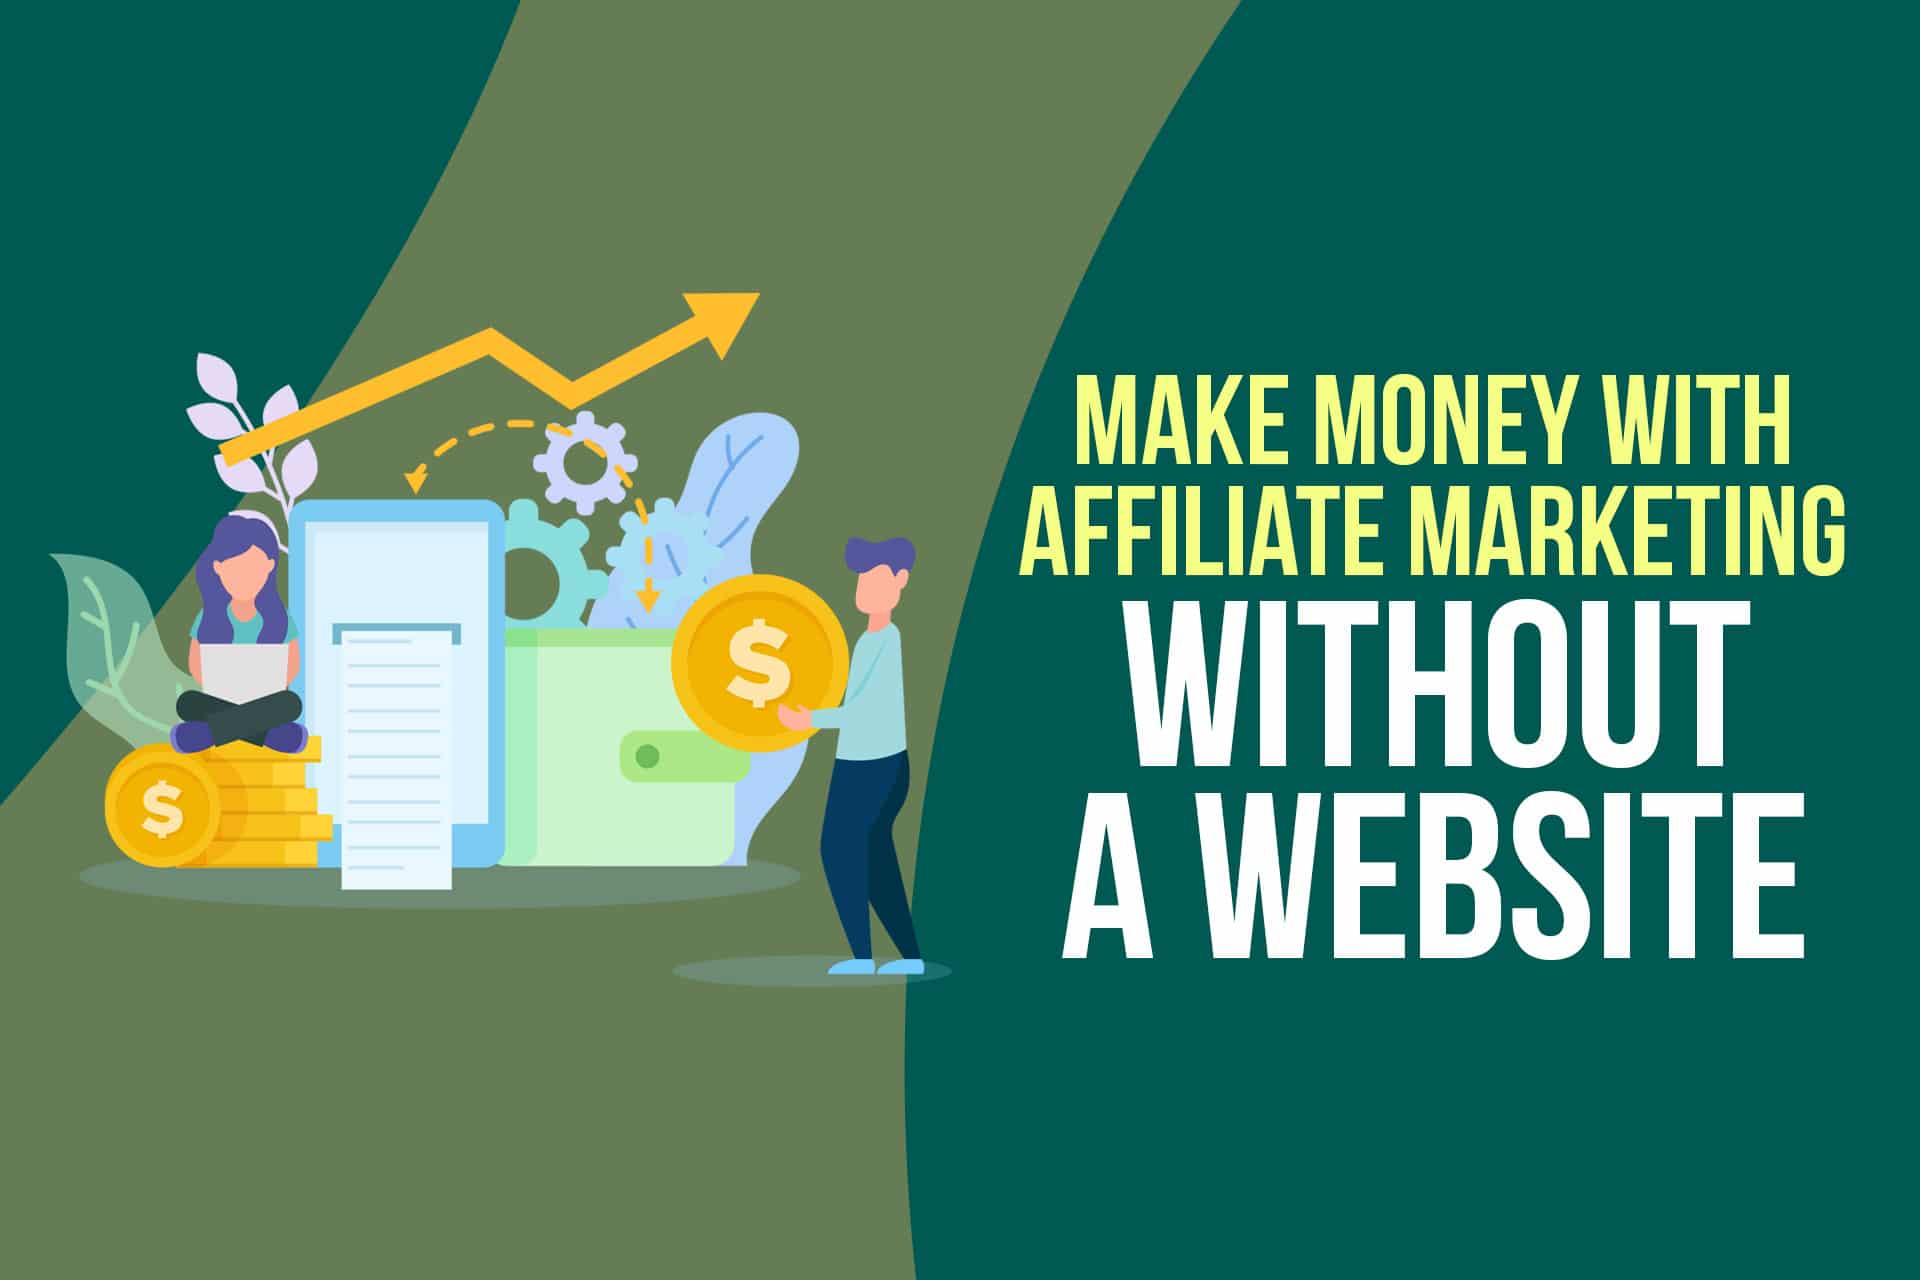 Affiliate Marketing Without a Website